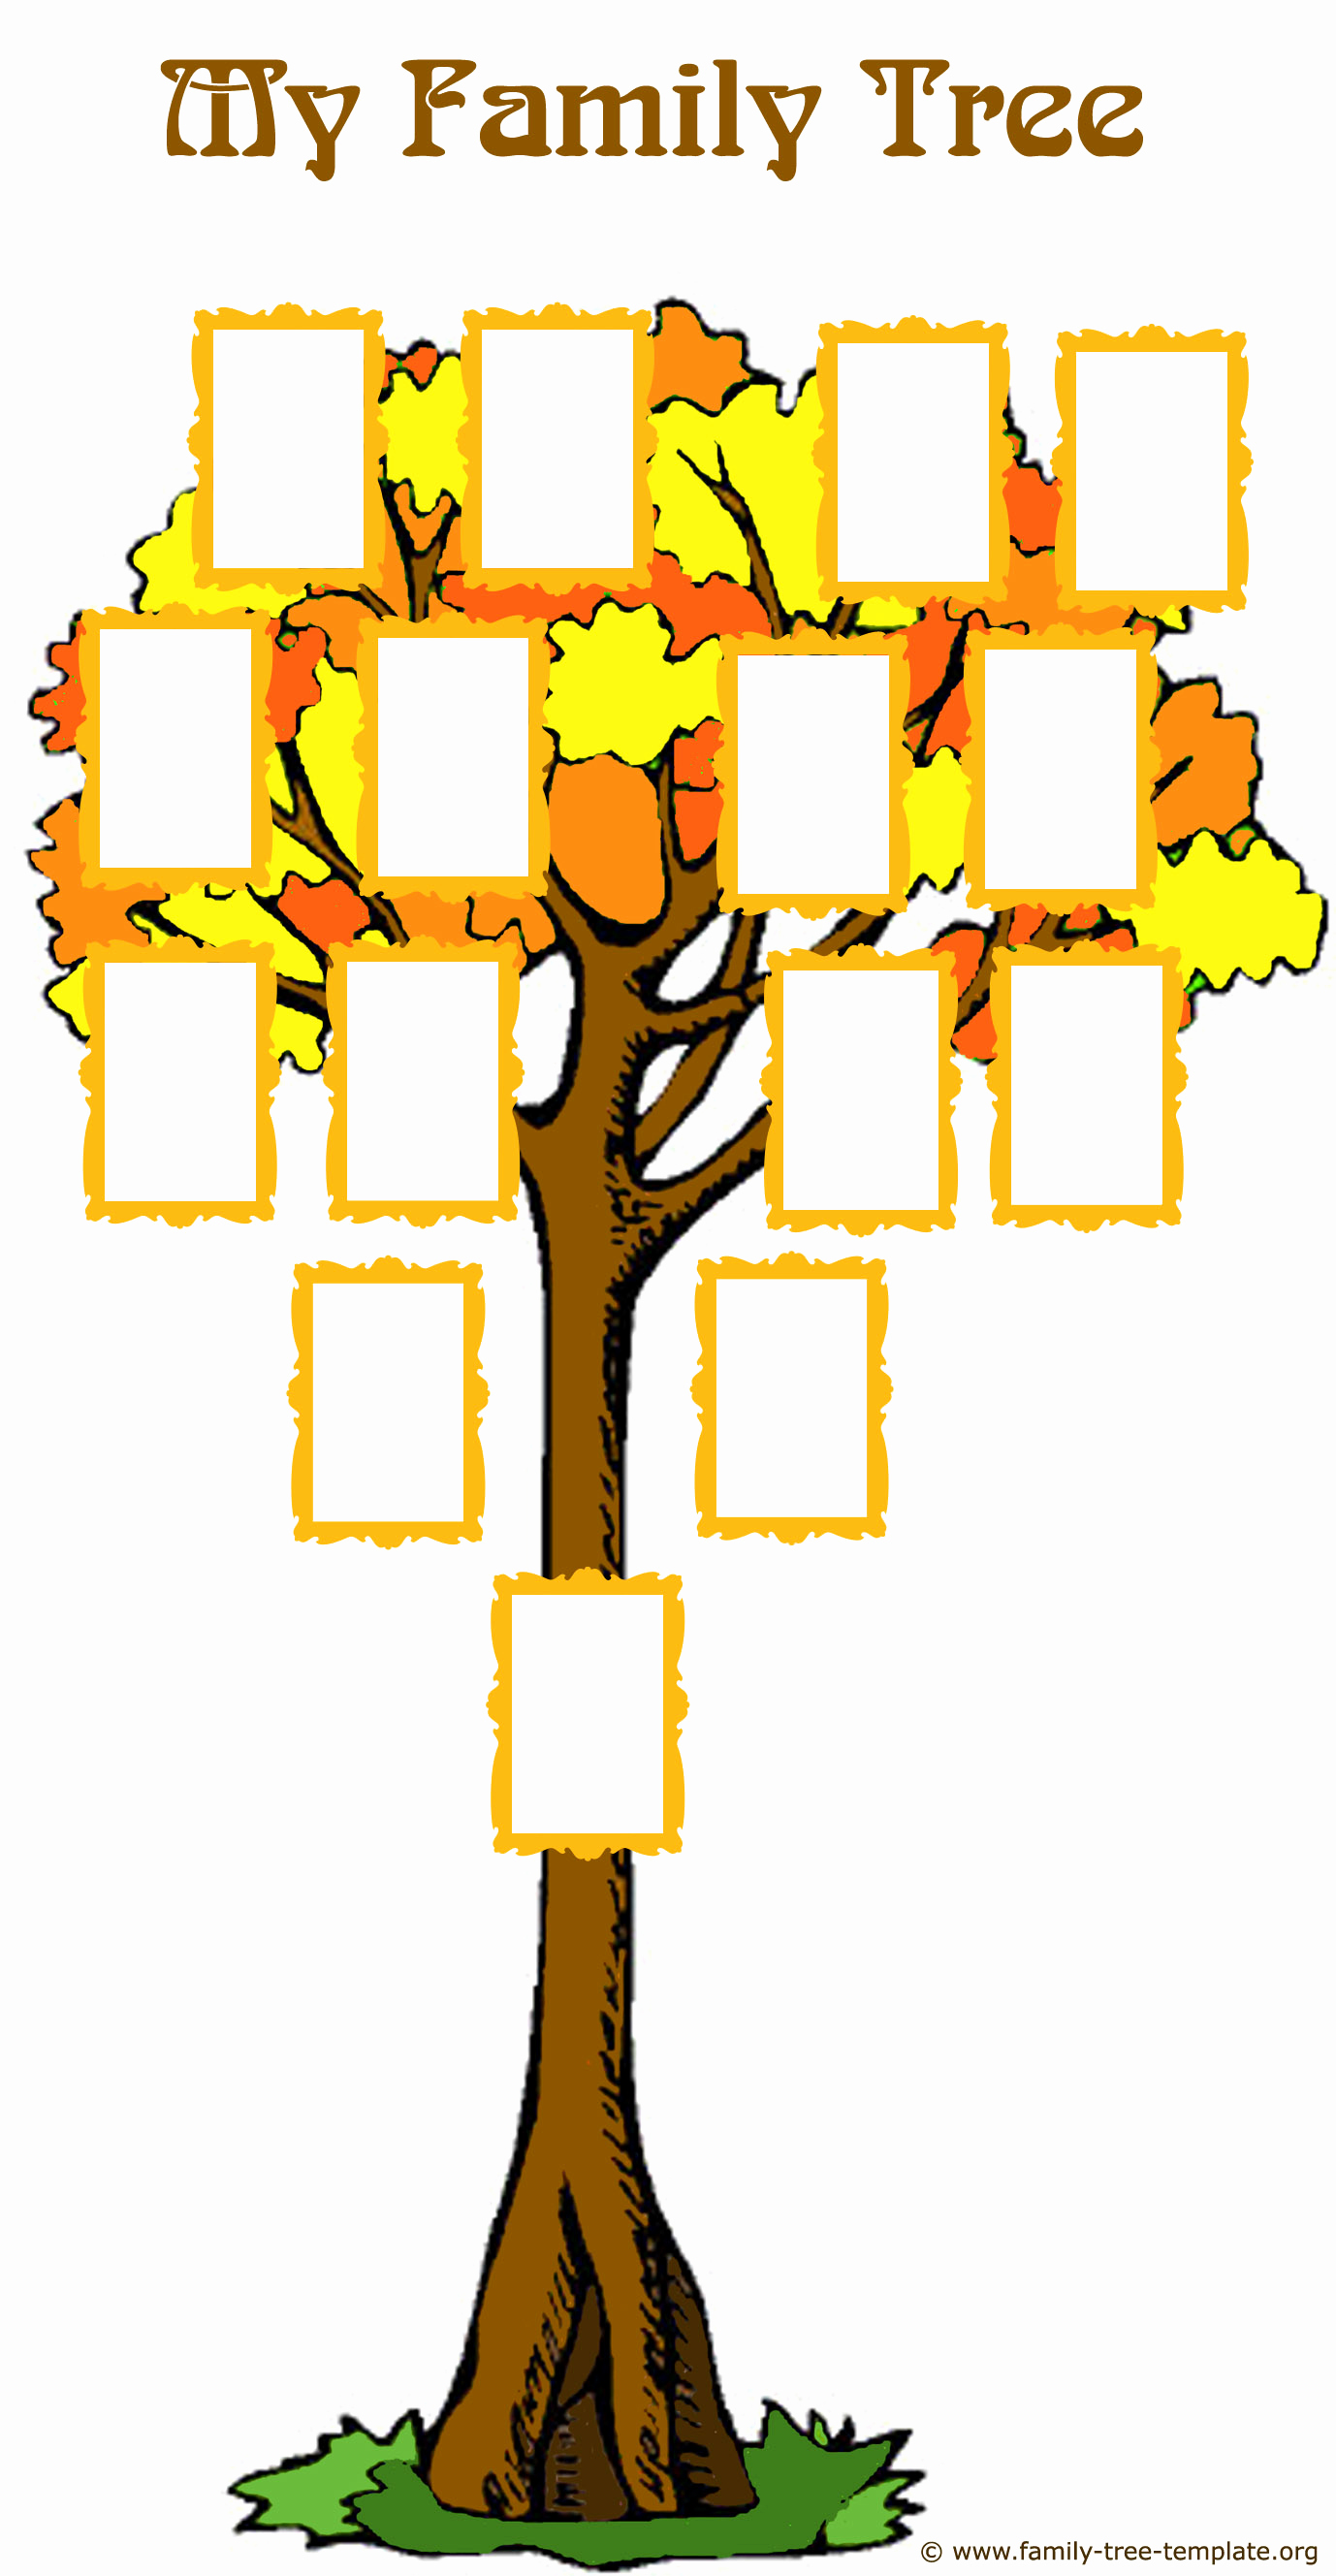 Template for Family Tree Elegant Fabulous Family Tree forms and Easy Genealogy Methods